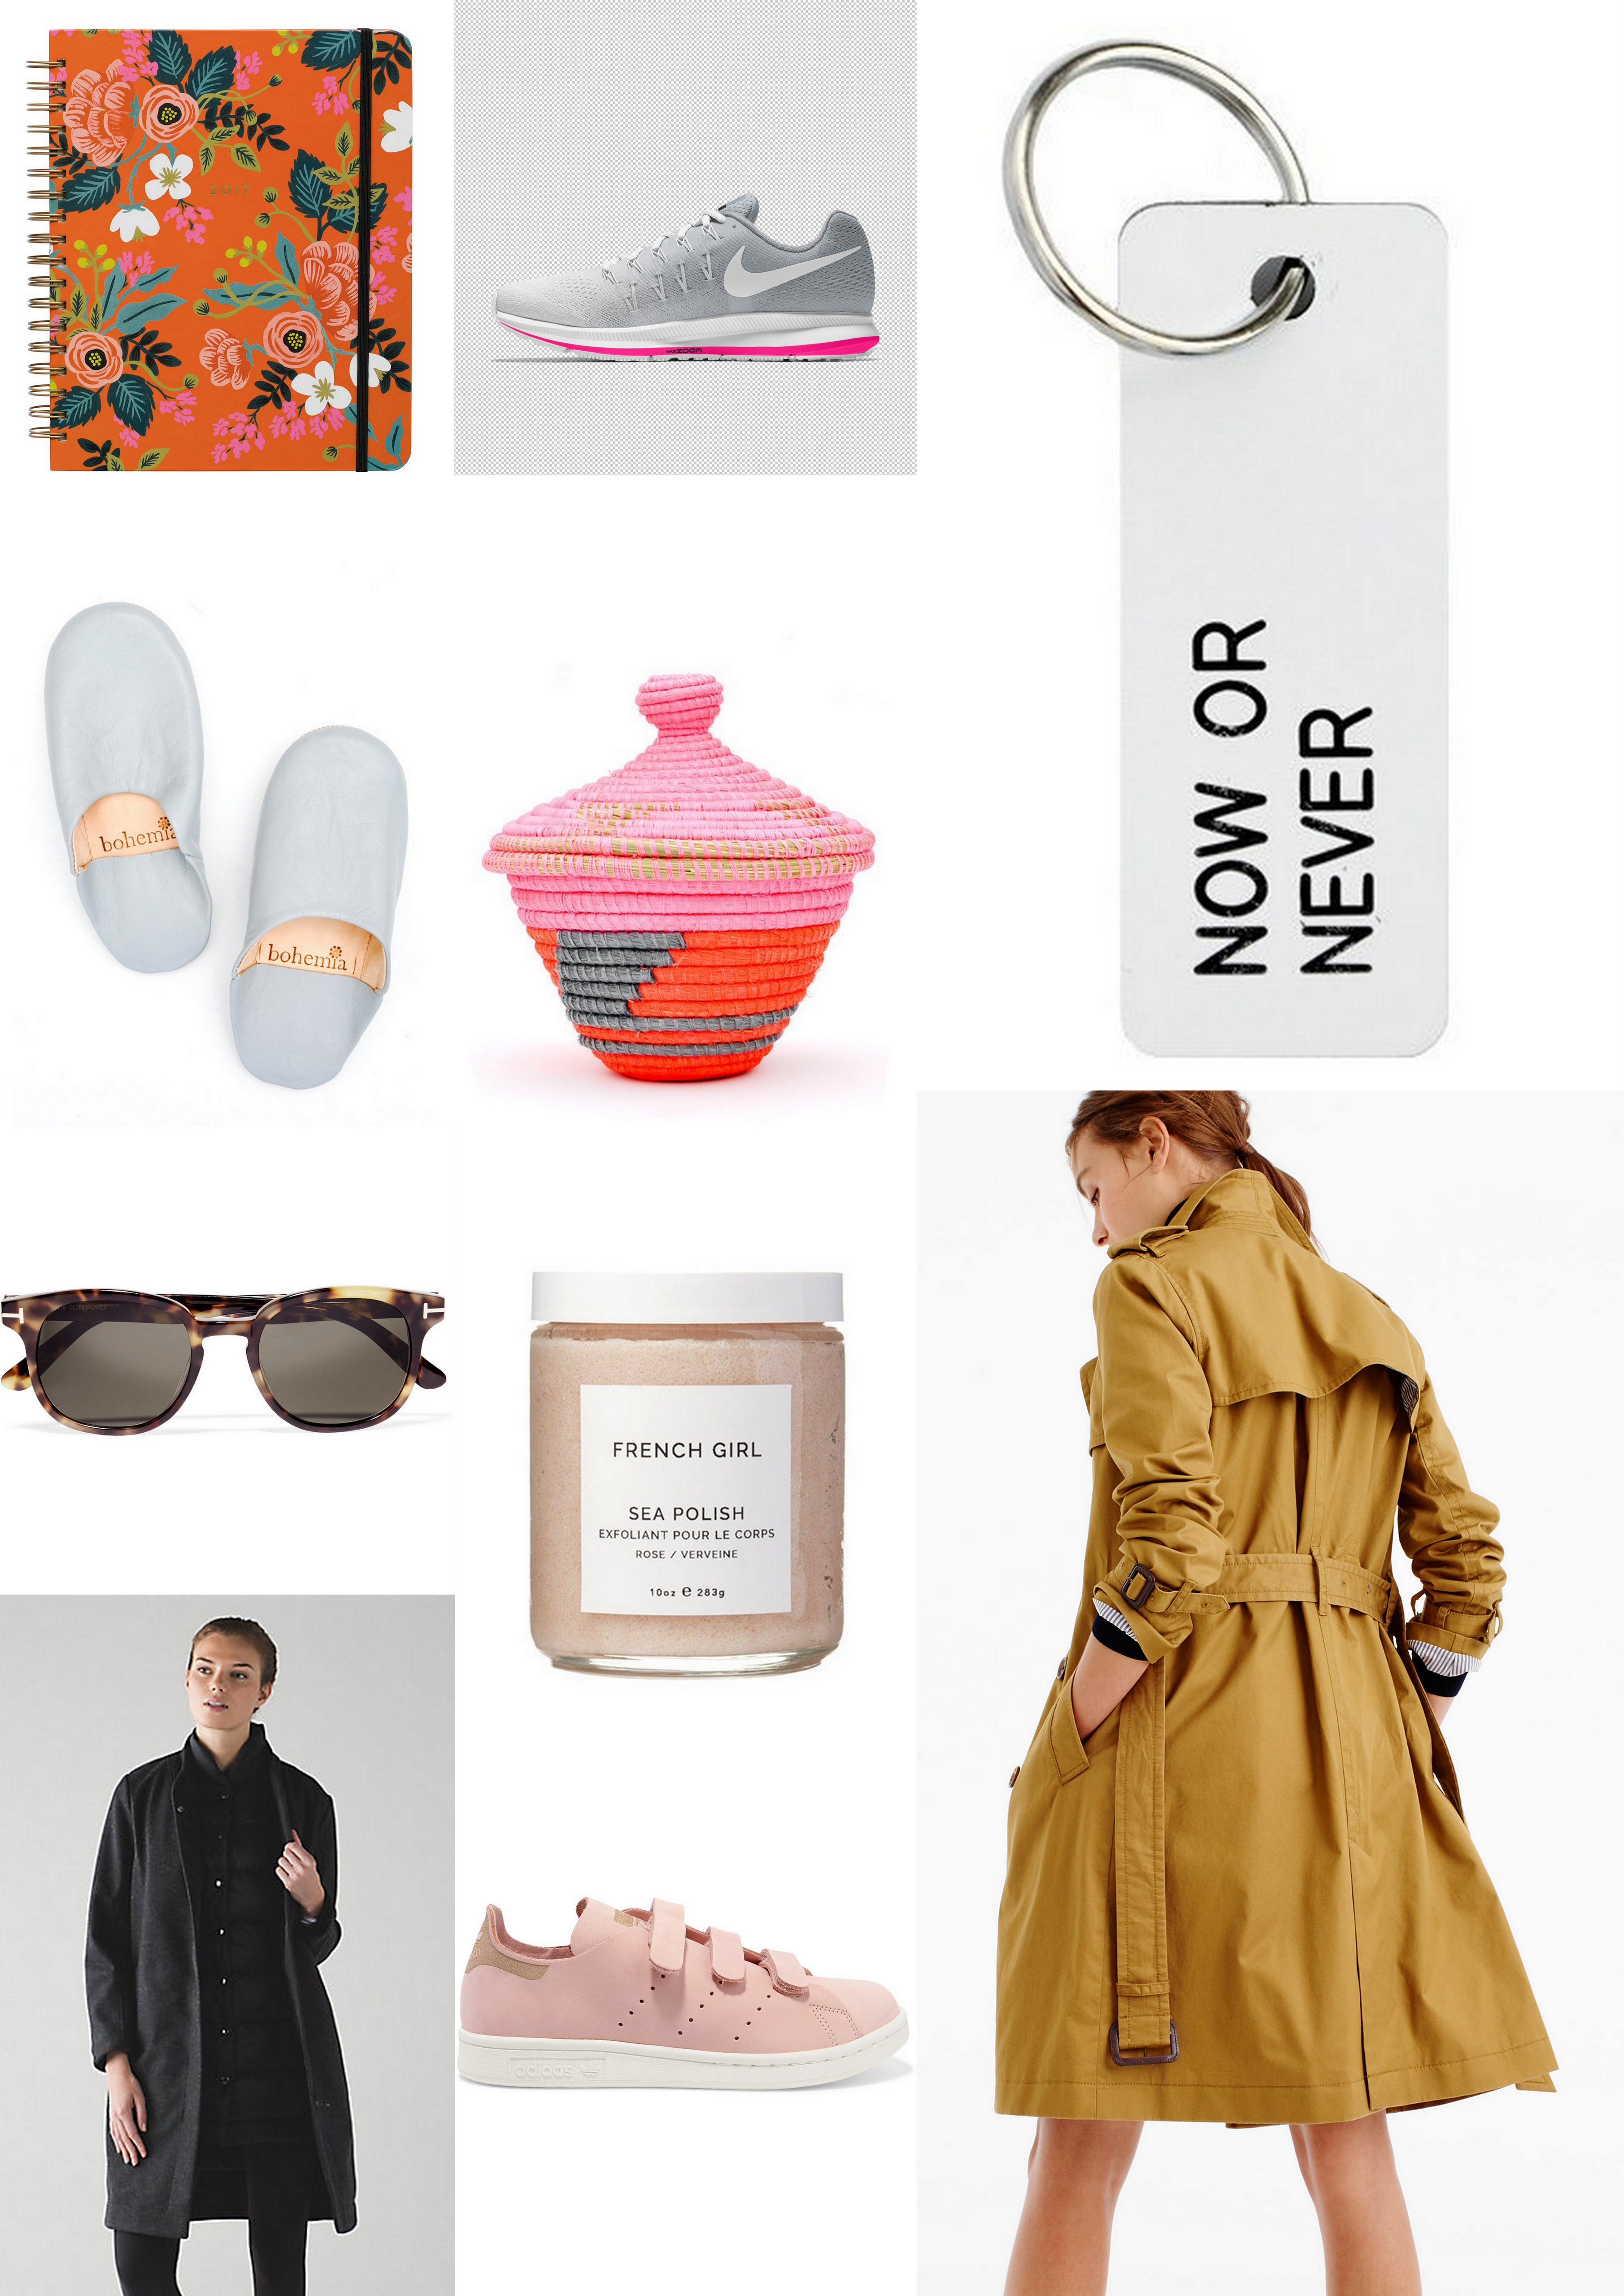 Find the latest Madewell promo codes, coupons & deals for December - plus earn % Cash Back at Ebates. Join now for a free $10 Welcome Bonus.